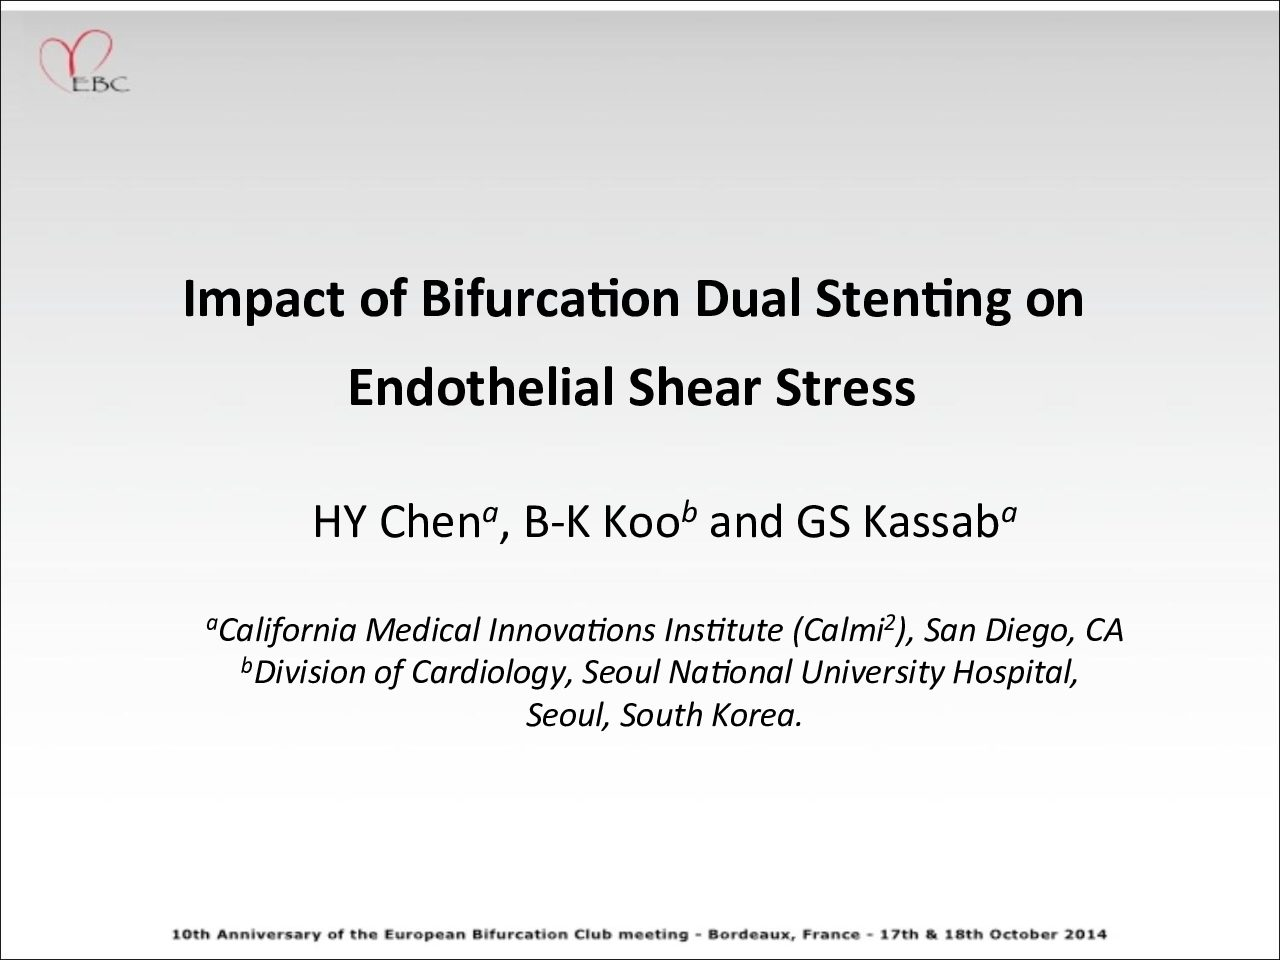 Impact of bifurcation stenting on Endothelial Shear Stress